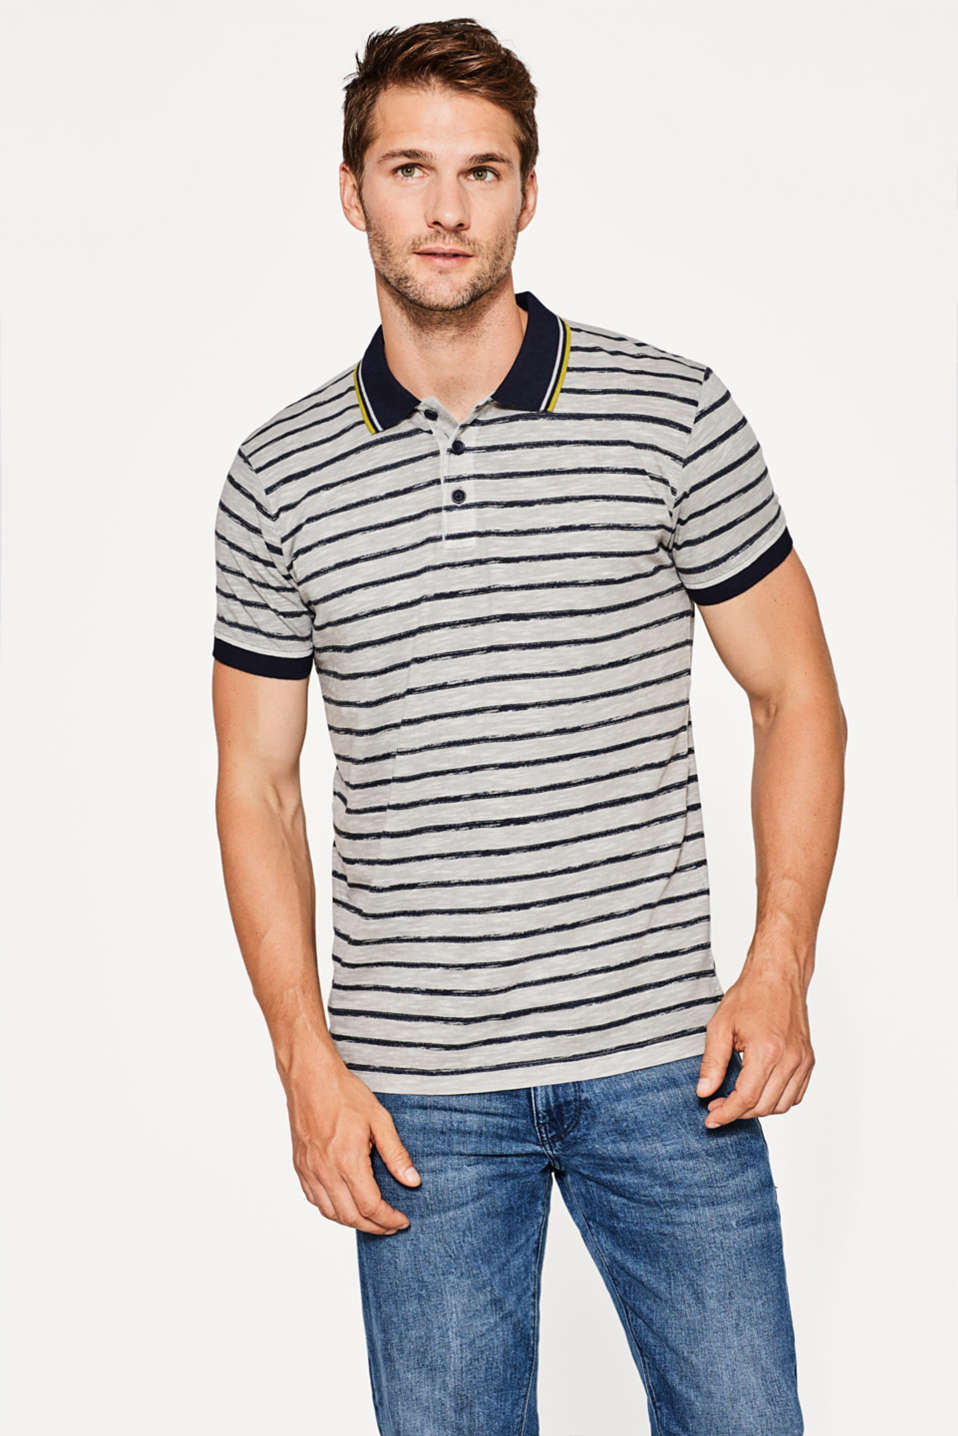 Esprit - Slub jersey polo shirt in 100% cotton